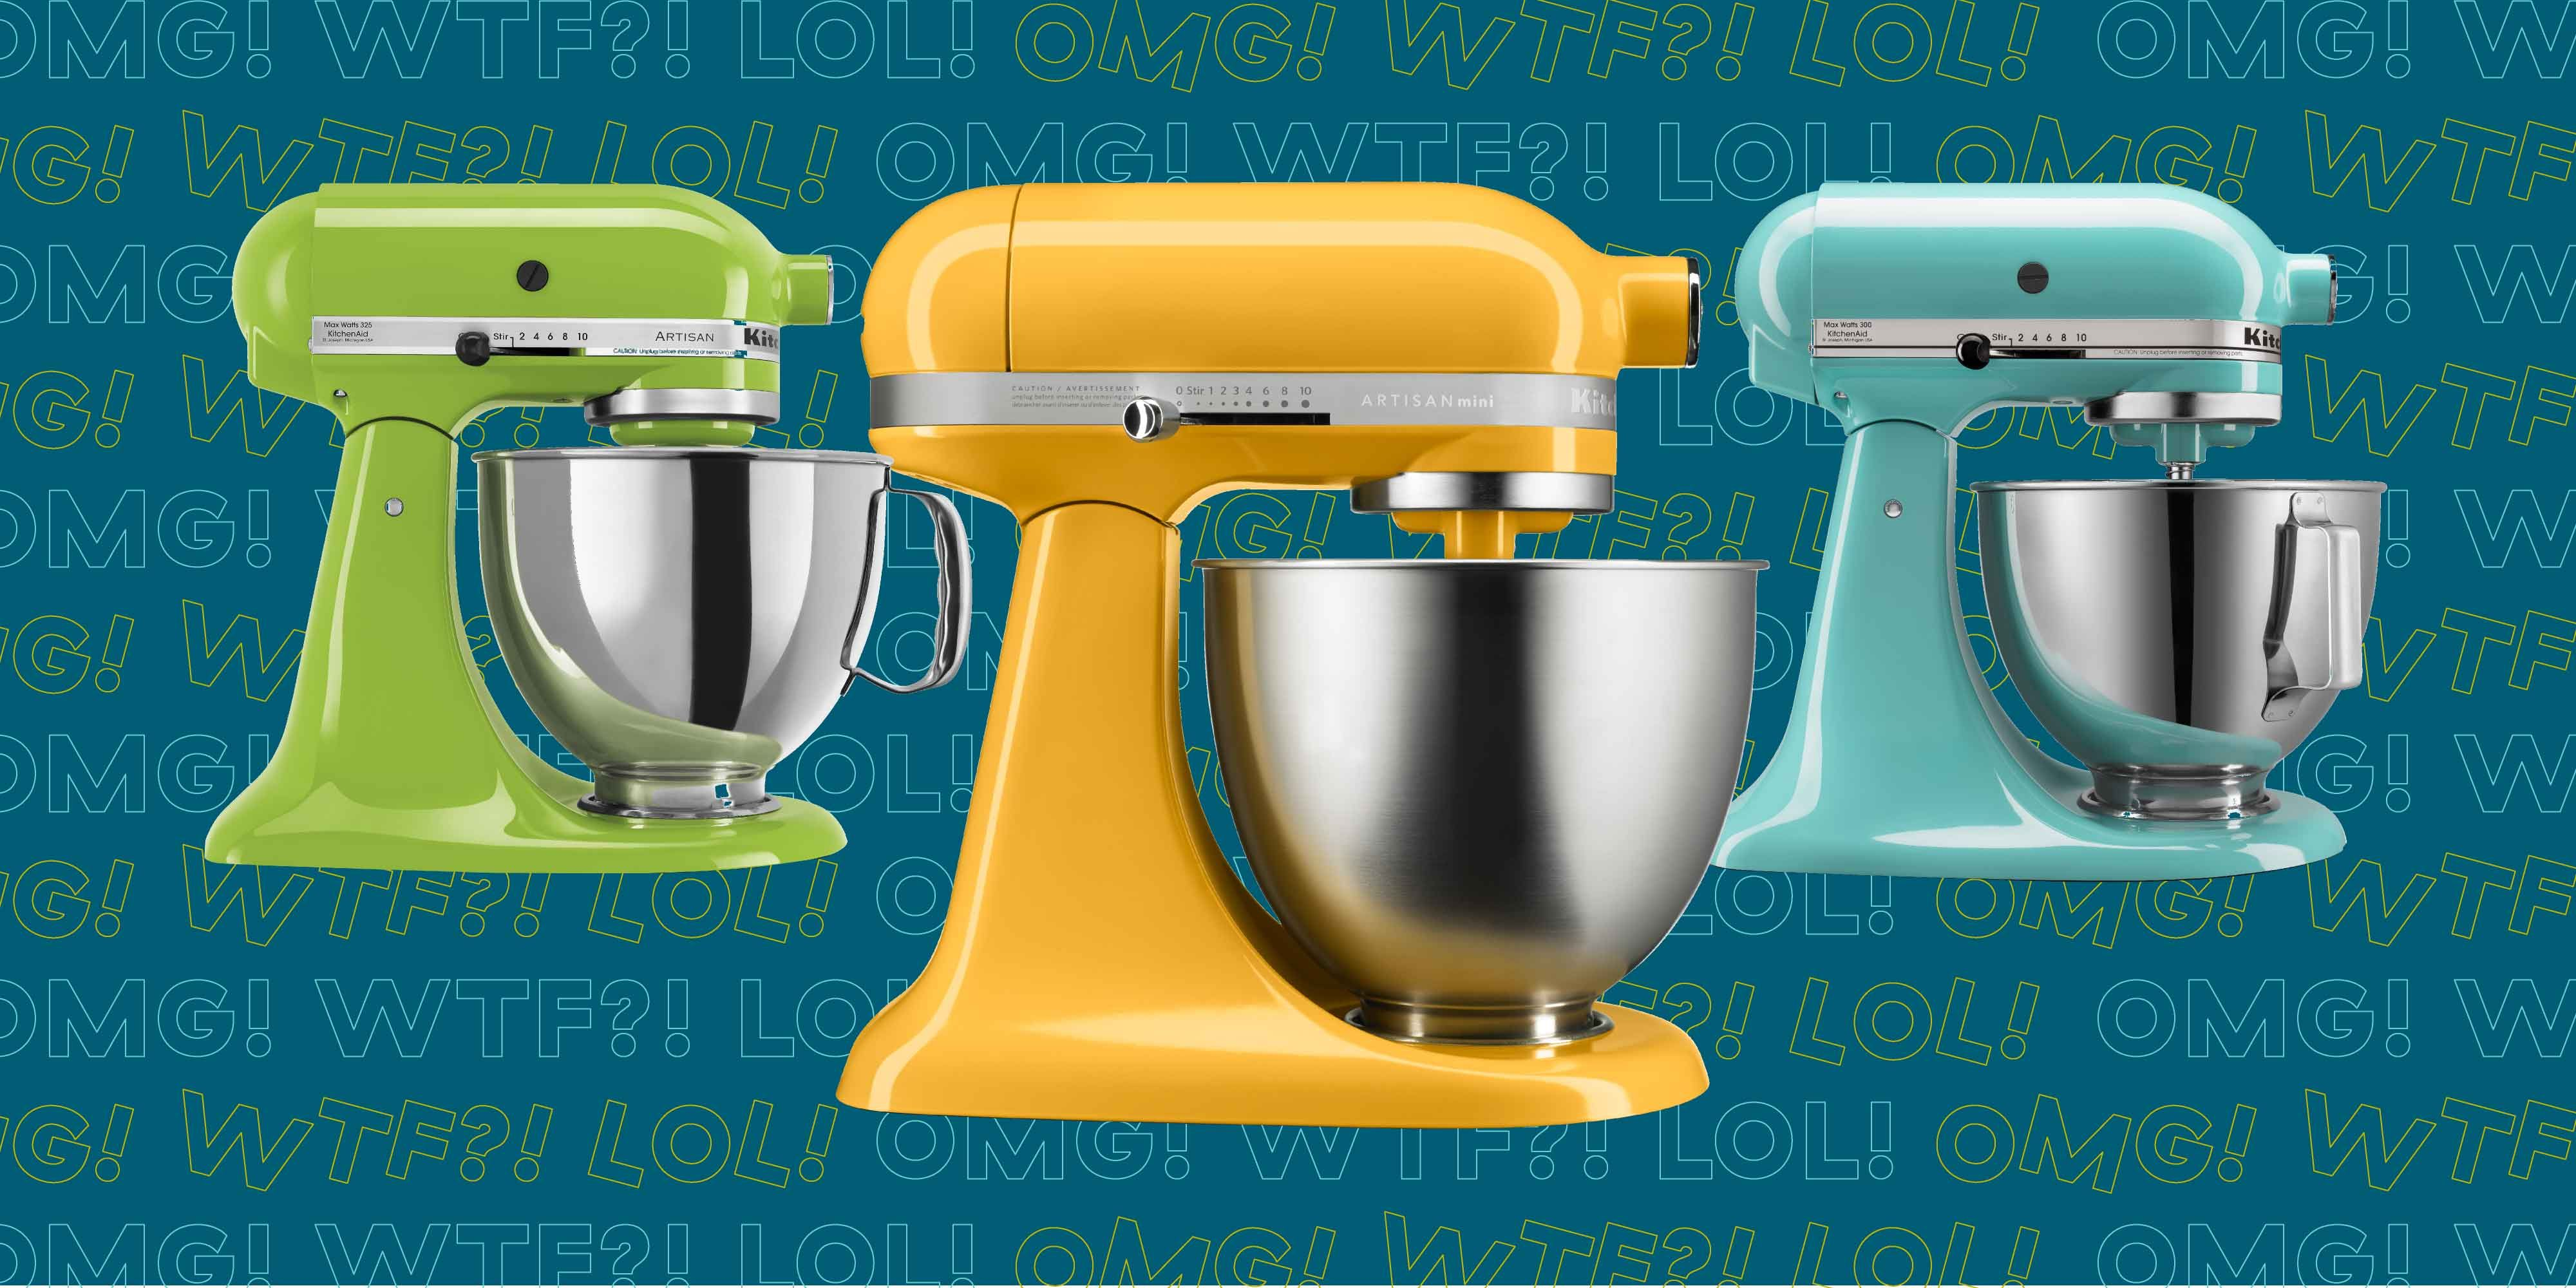 Kitchenaid Küchenmaschine Video What You Should Know Before Buying A Kitchenaid Stand Mixer Delish